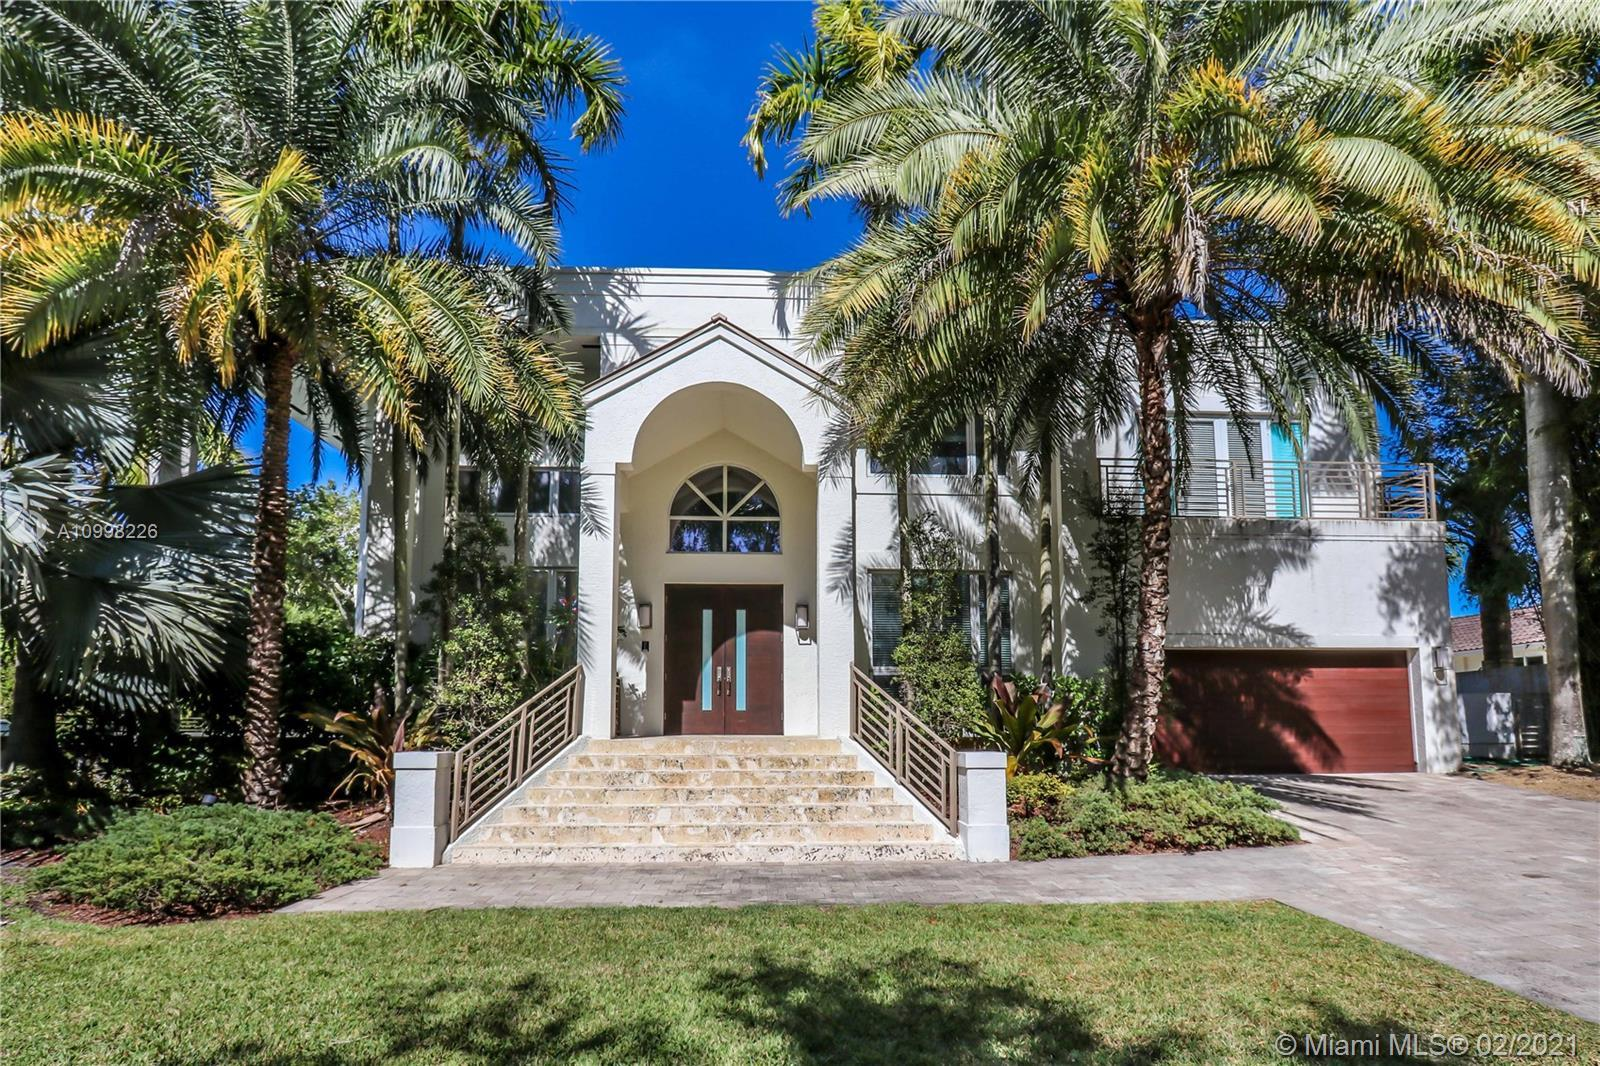 Private Residence located in the prestigious gated community of Pinecrest(former Gables) by The Sea.